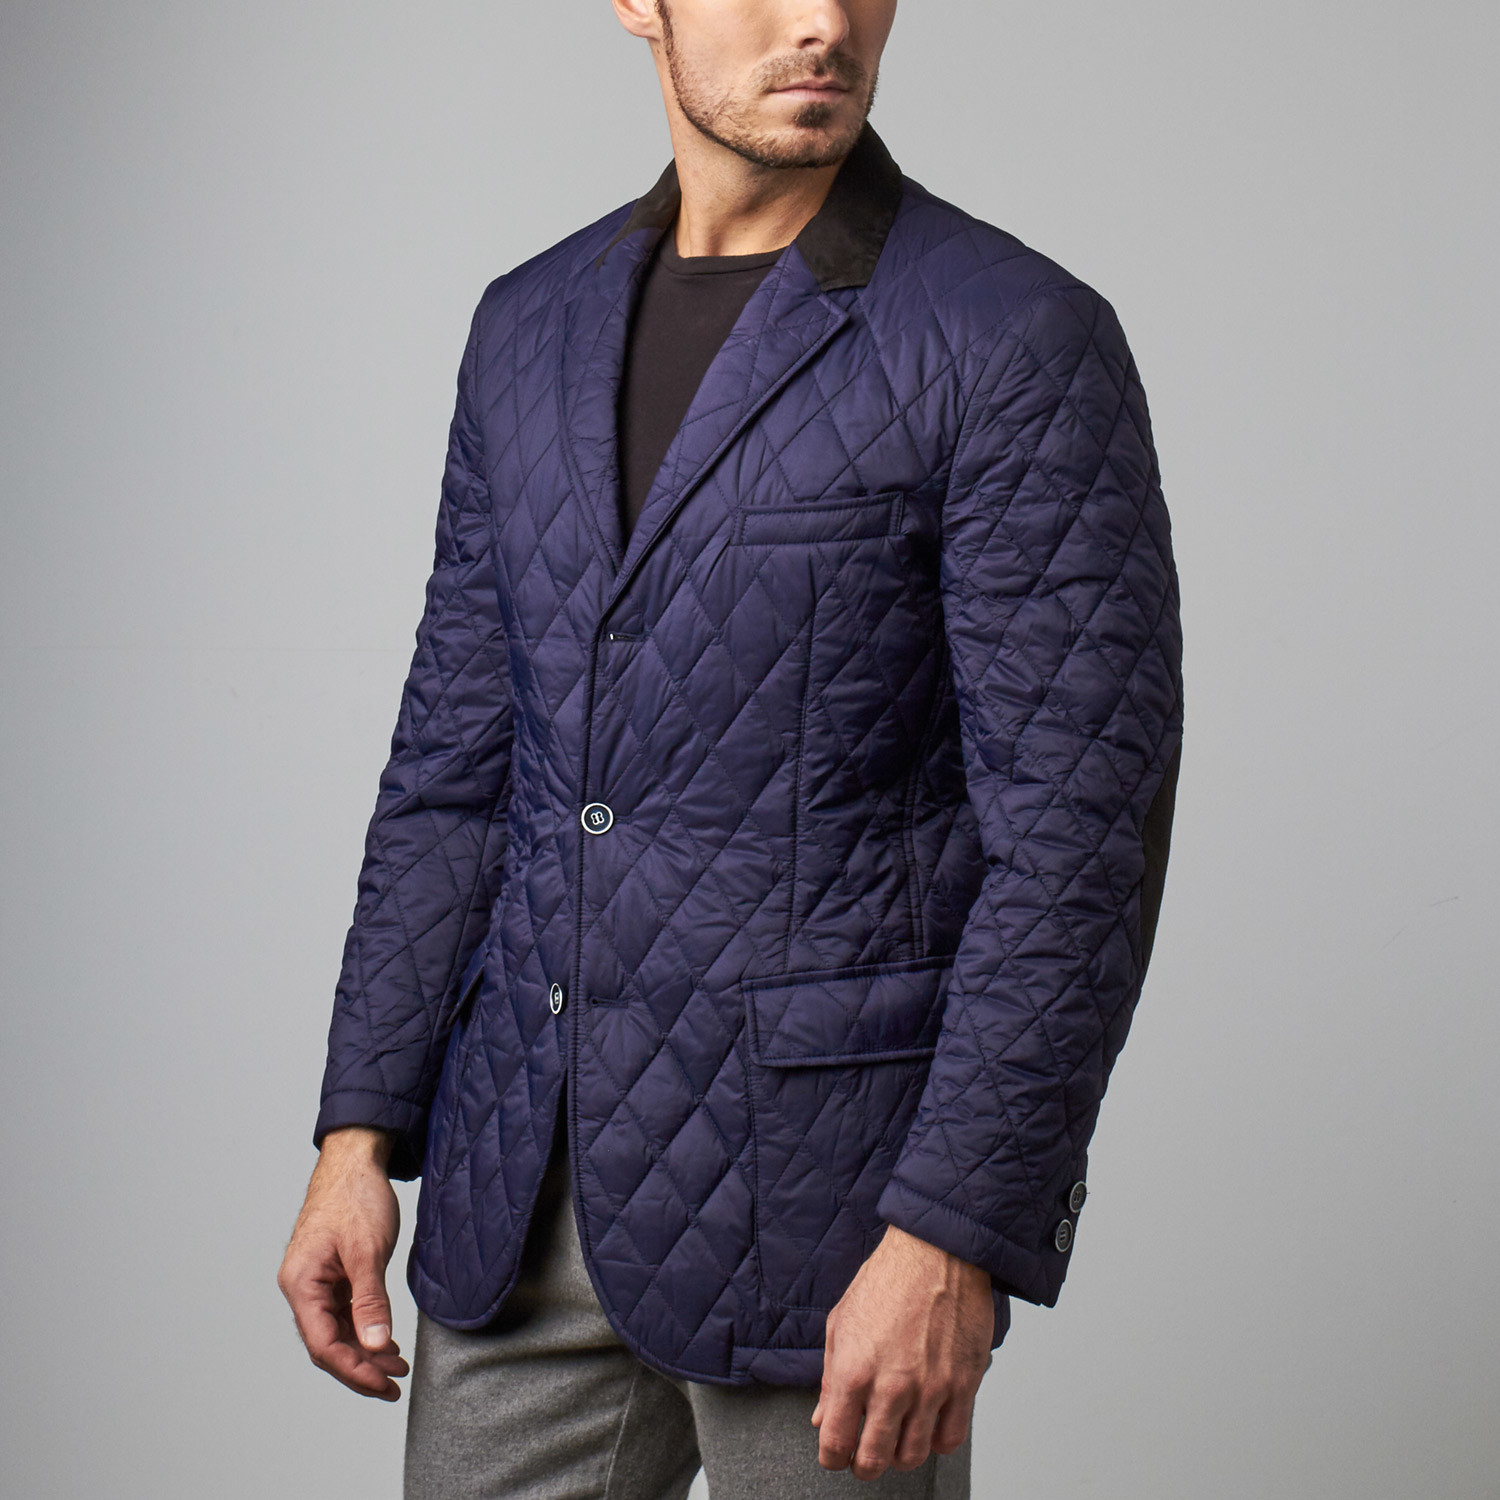 Find great deals on eBay for blue quilted jacket. Shop with confidence.